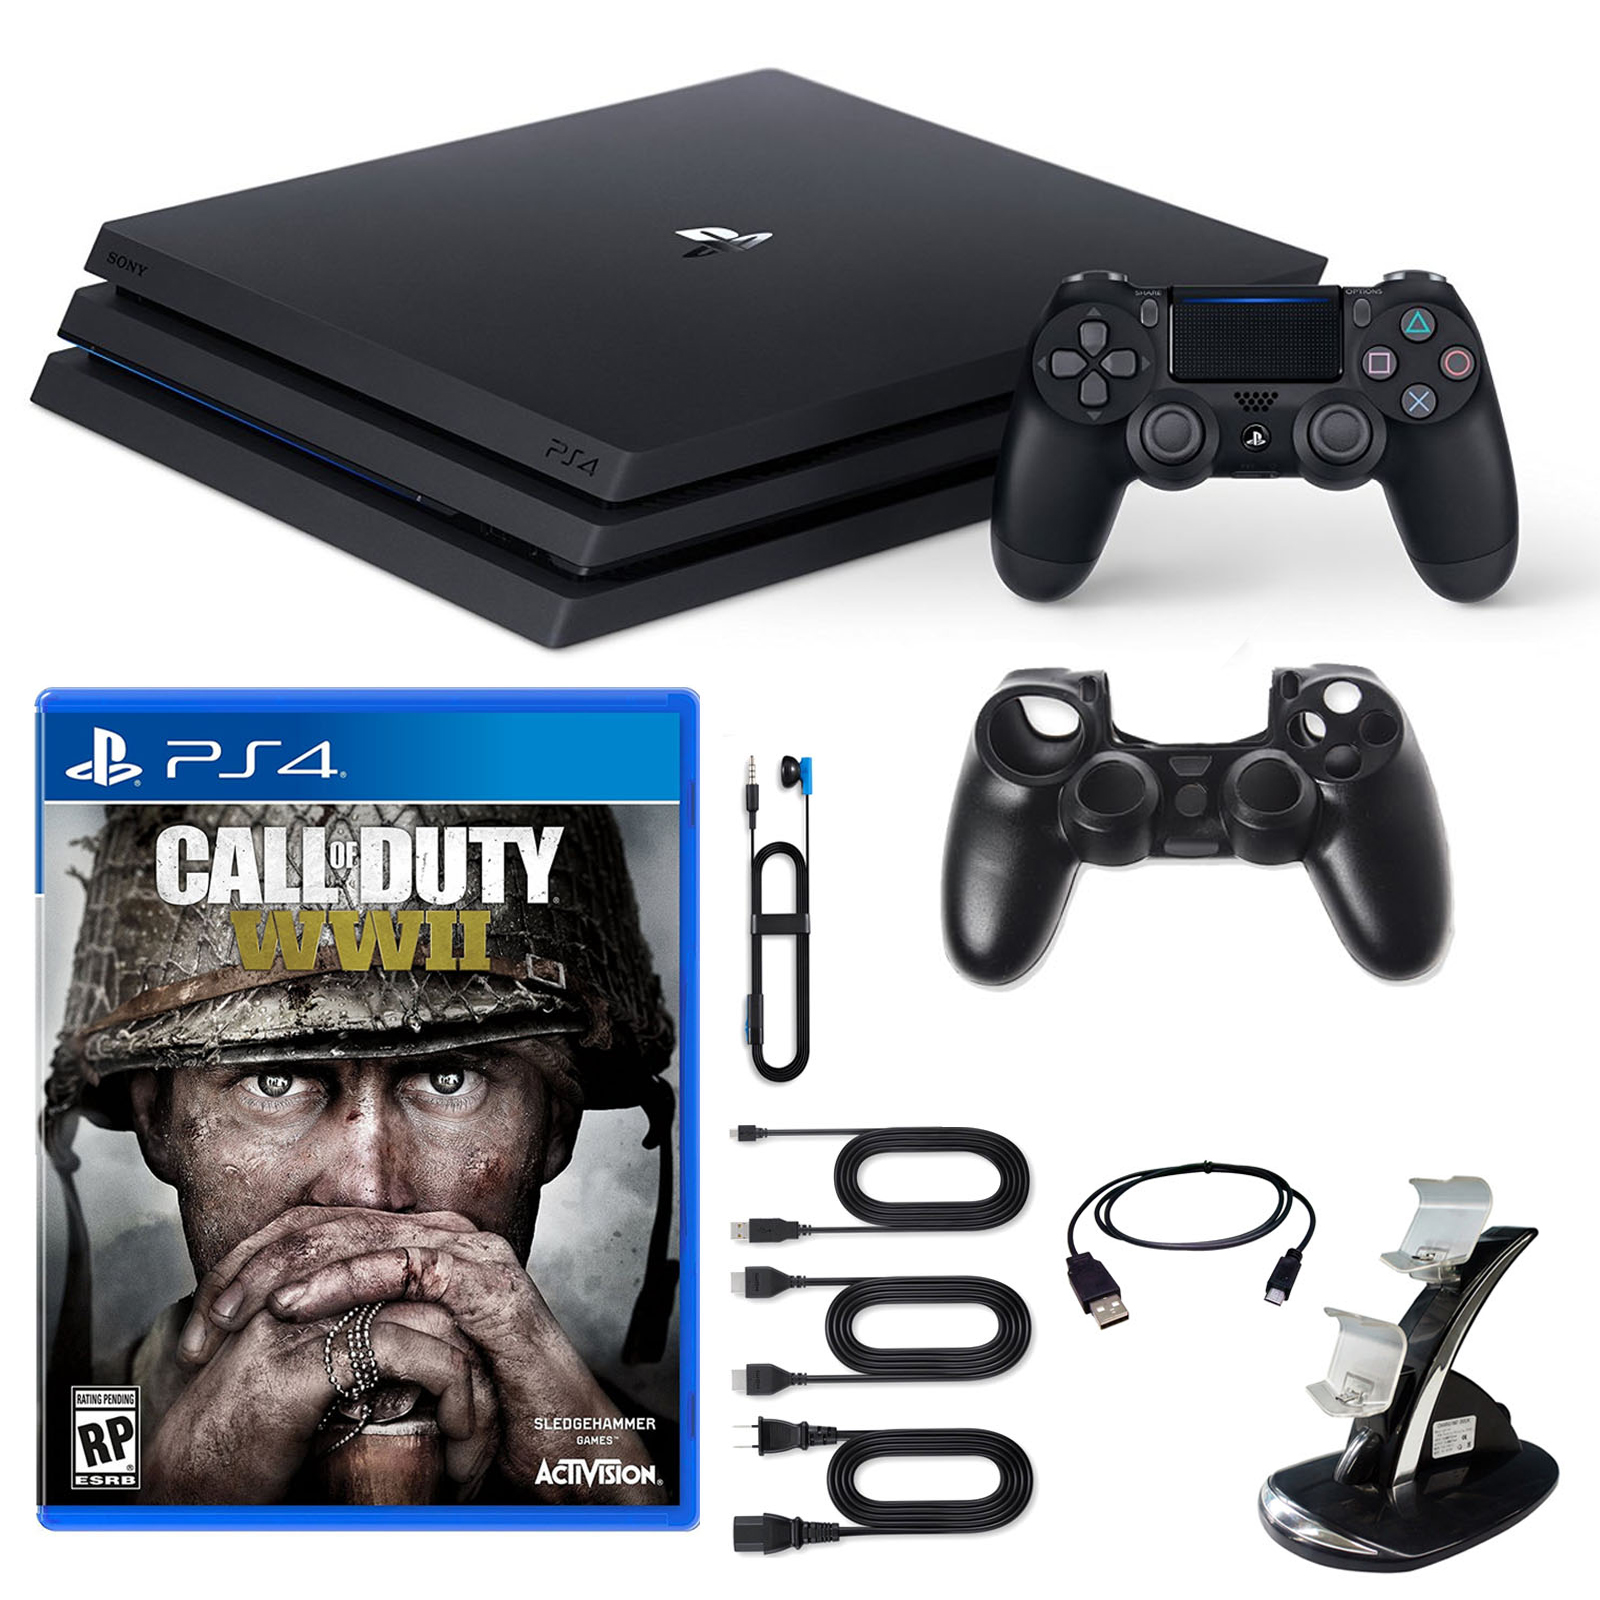 PlayStation 4 Pro 1TB Console COD WWII and Accessories